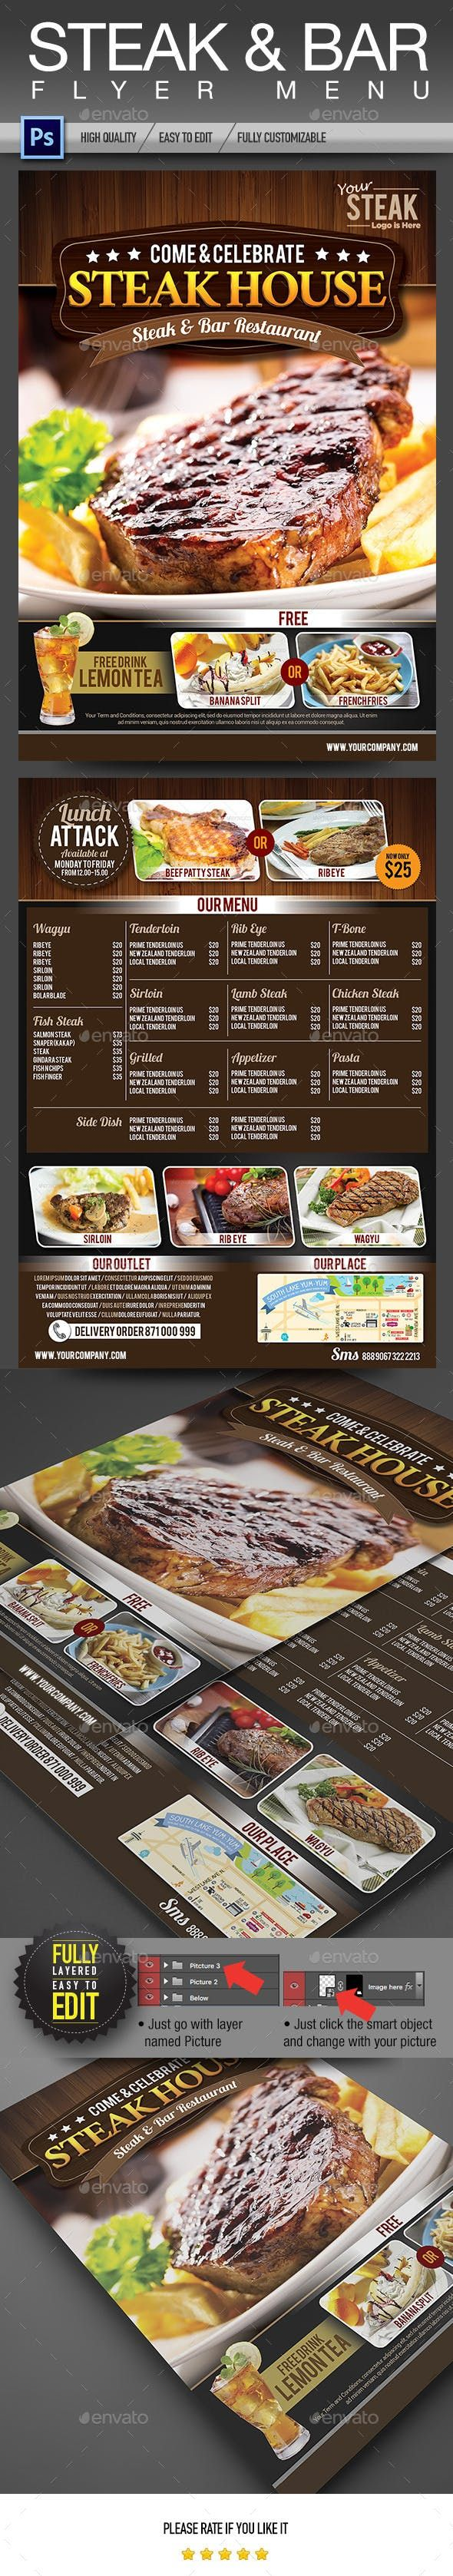 Steak & Bar Flyer Menu — PSD restaurant bbq